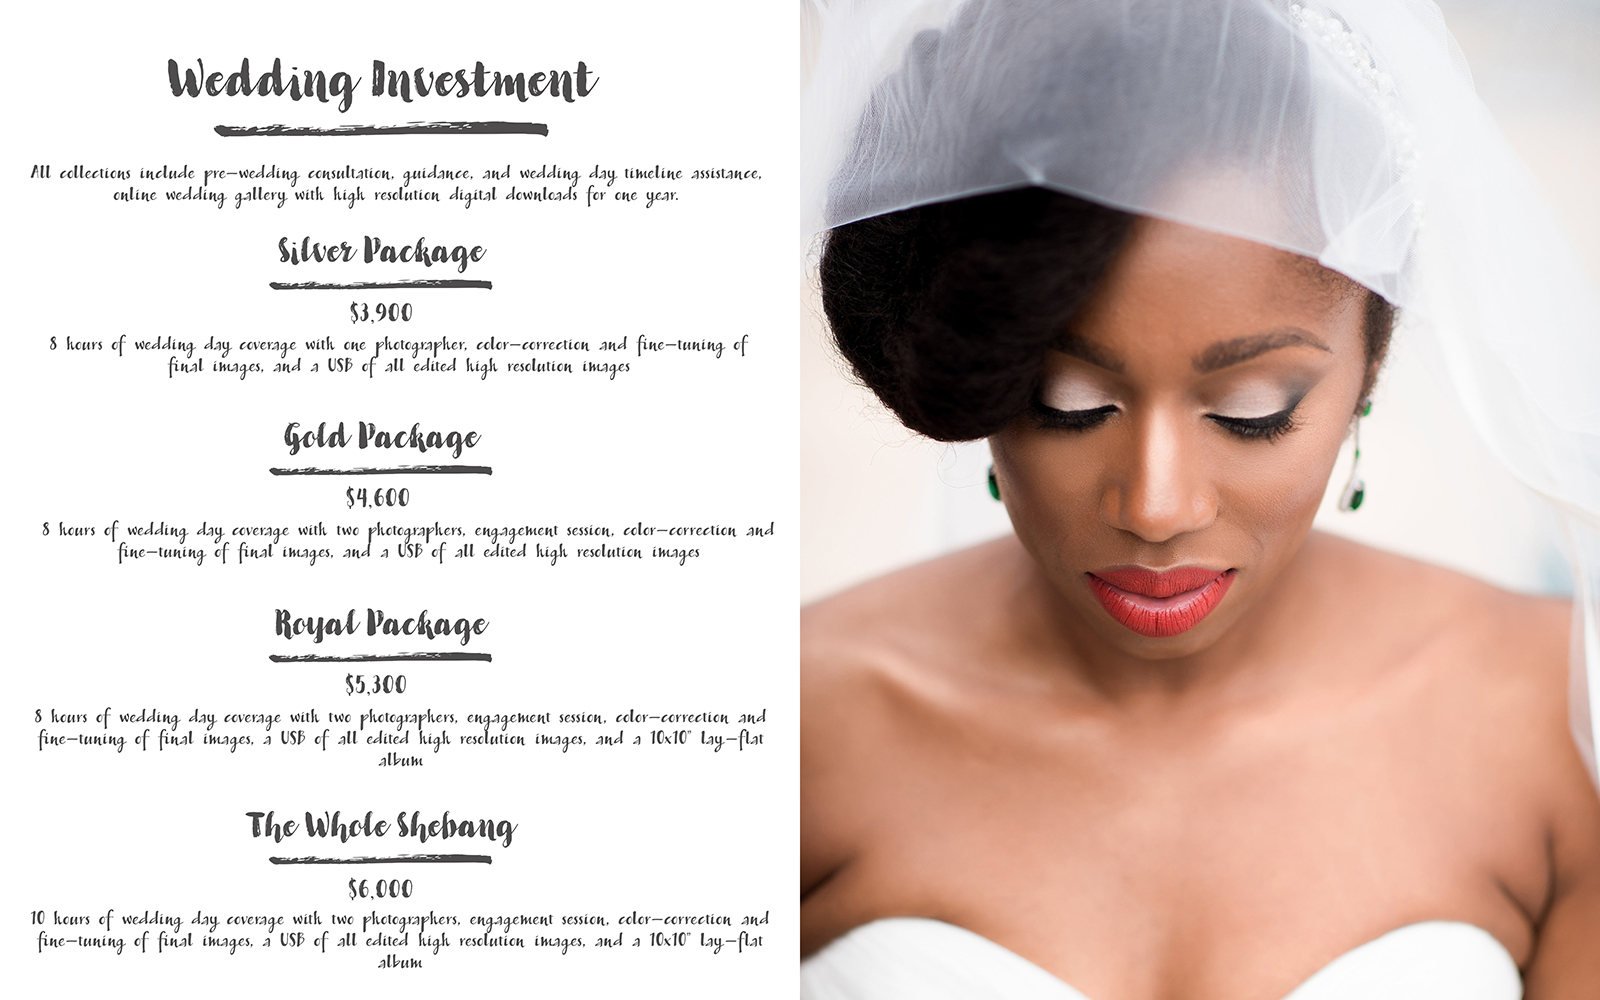 Pricing Guide 2019 wedding investment.jpg